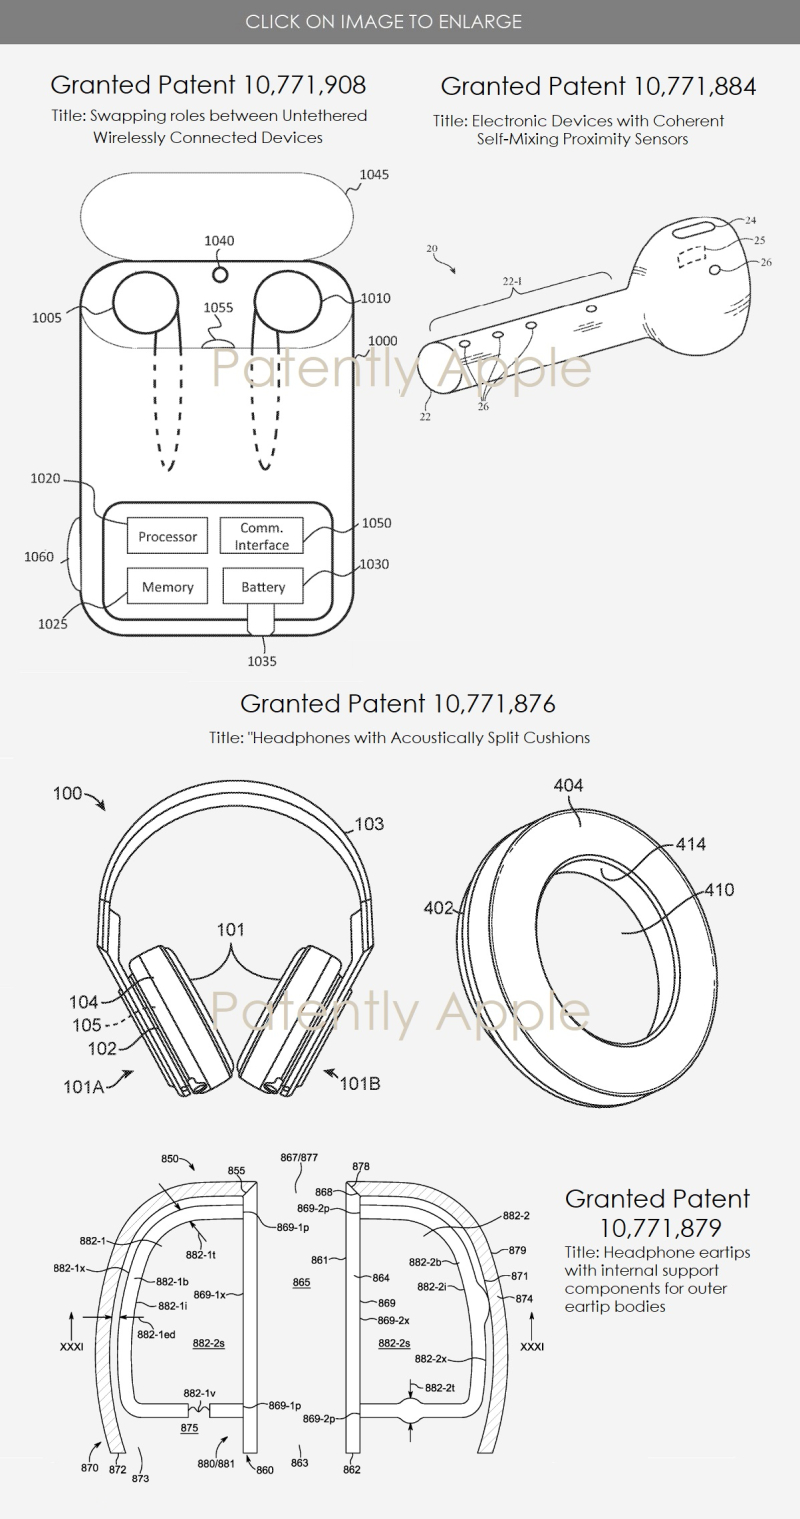 2 granted patents for headgear from Apple